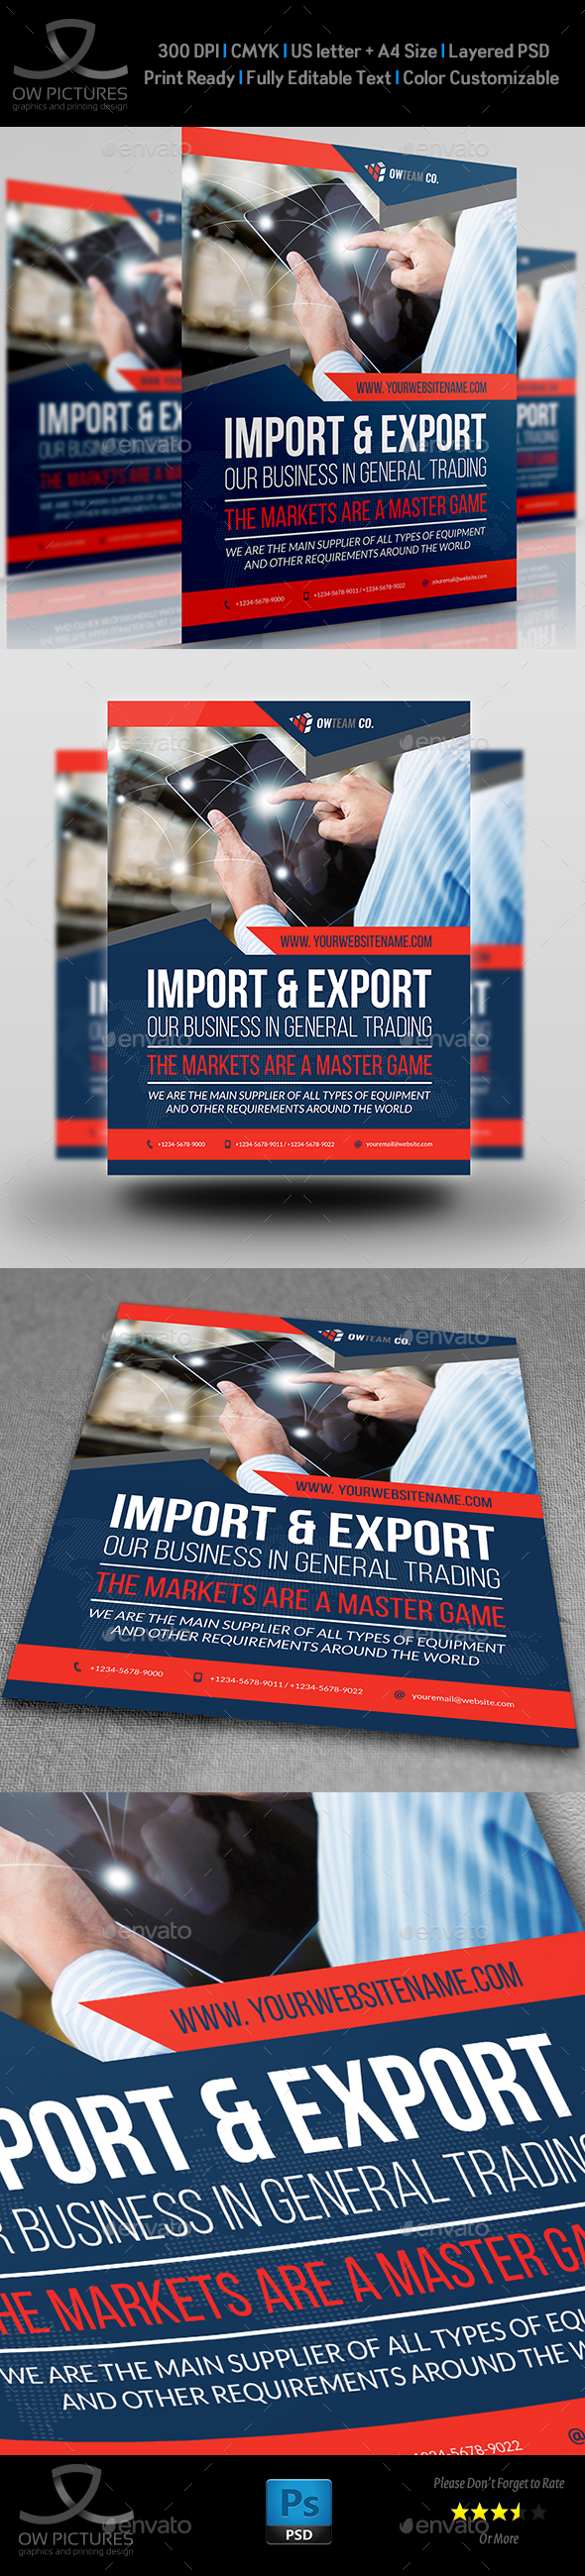 Trading Company Flyer Template - Corporate Flyers